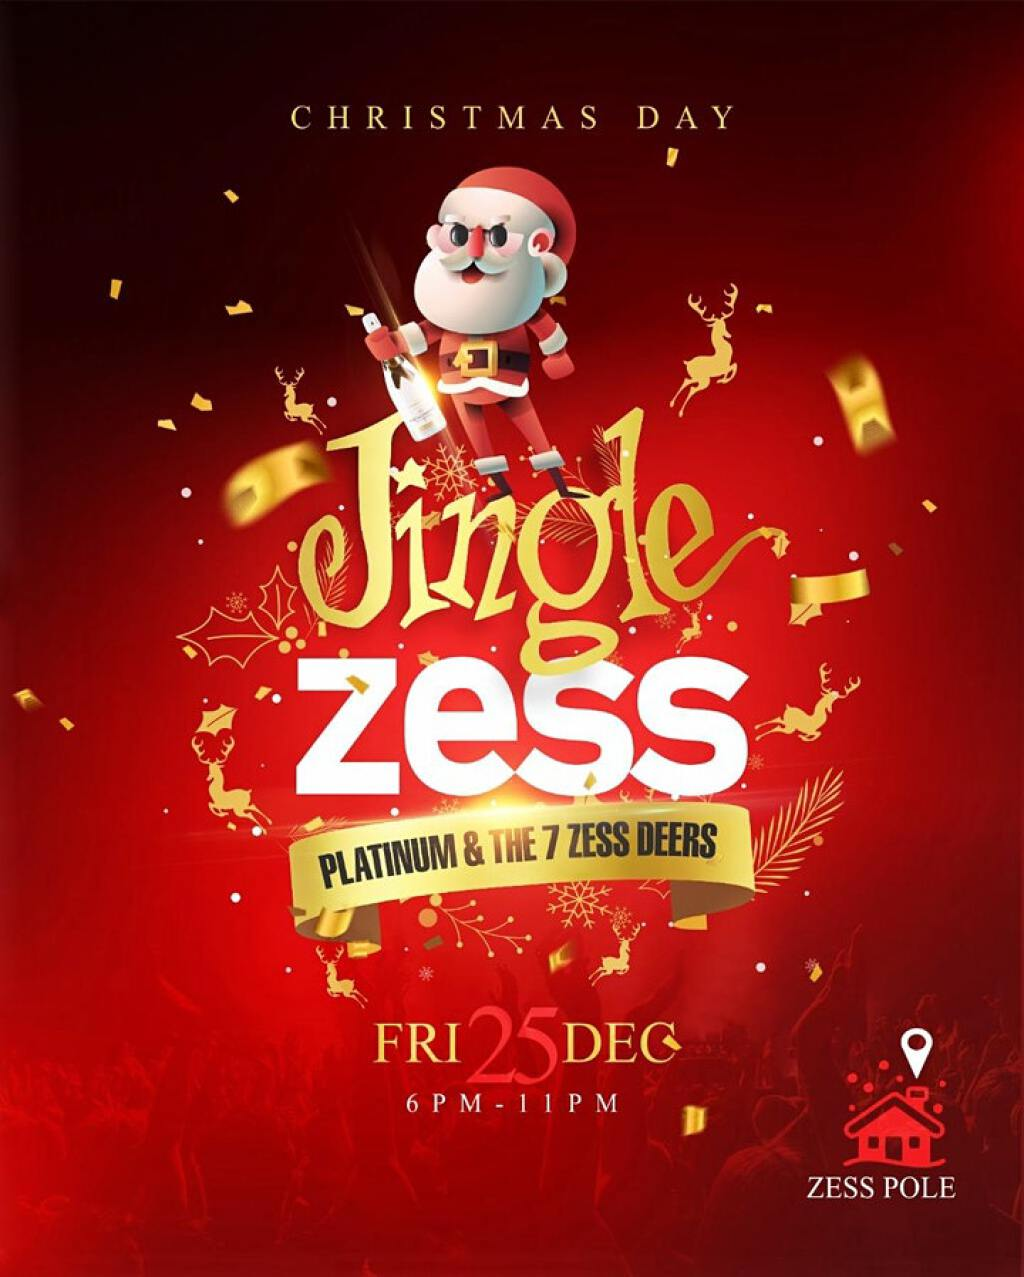 Jingle Zess flyer or graphic.